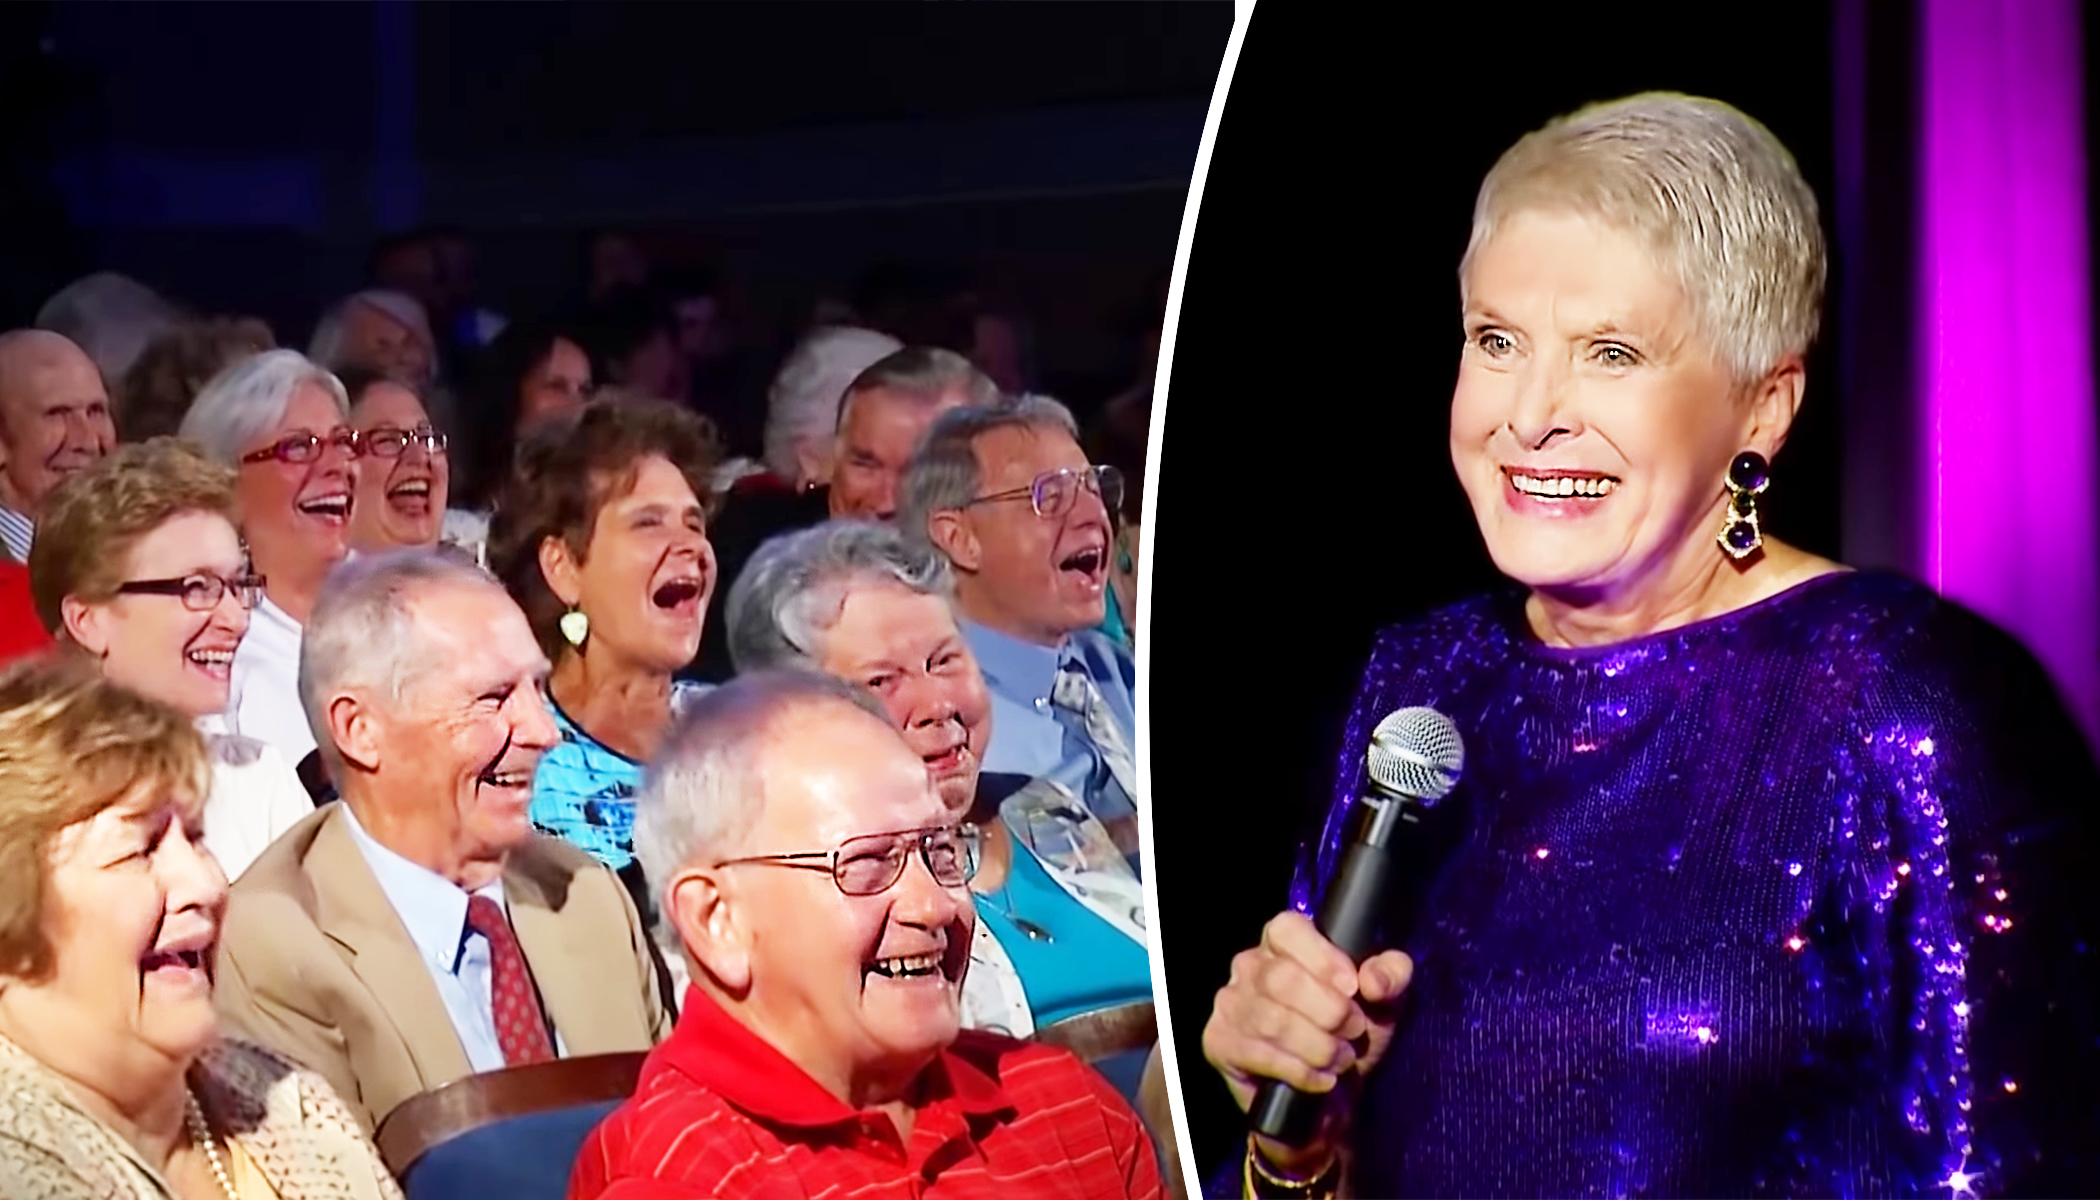 6-foot-2 Comedian Jeanne Robertson Shares Onstage Wardrobe Woes That Leave Audience Rolling in the Aisles